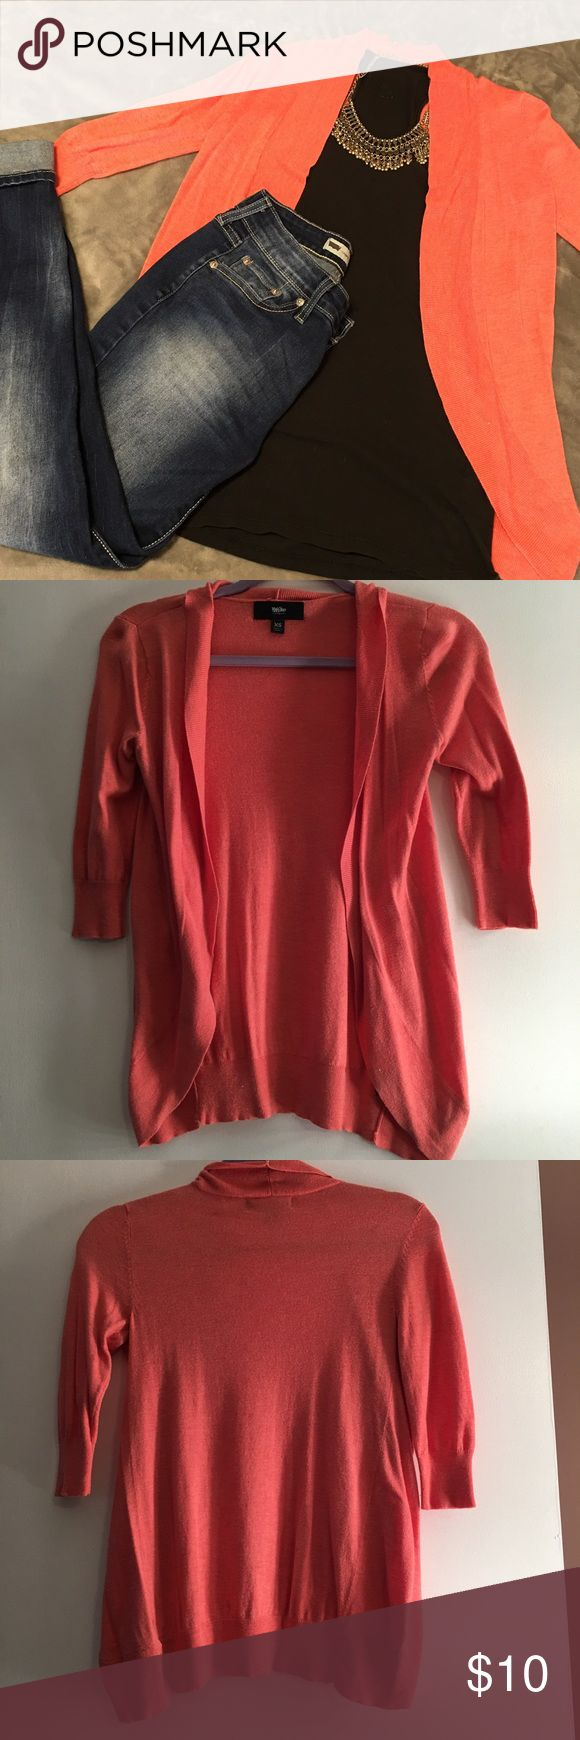 Coral 3/4 sleeve cardigan In great condition! Lightweight! Come from smoke free, pet free home. Shipping dates are Tuesday through Friday. Mossimo Supply Co Sweaters Cardigans